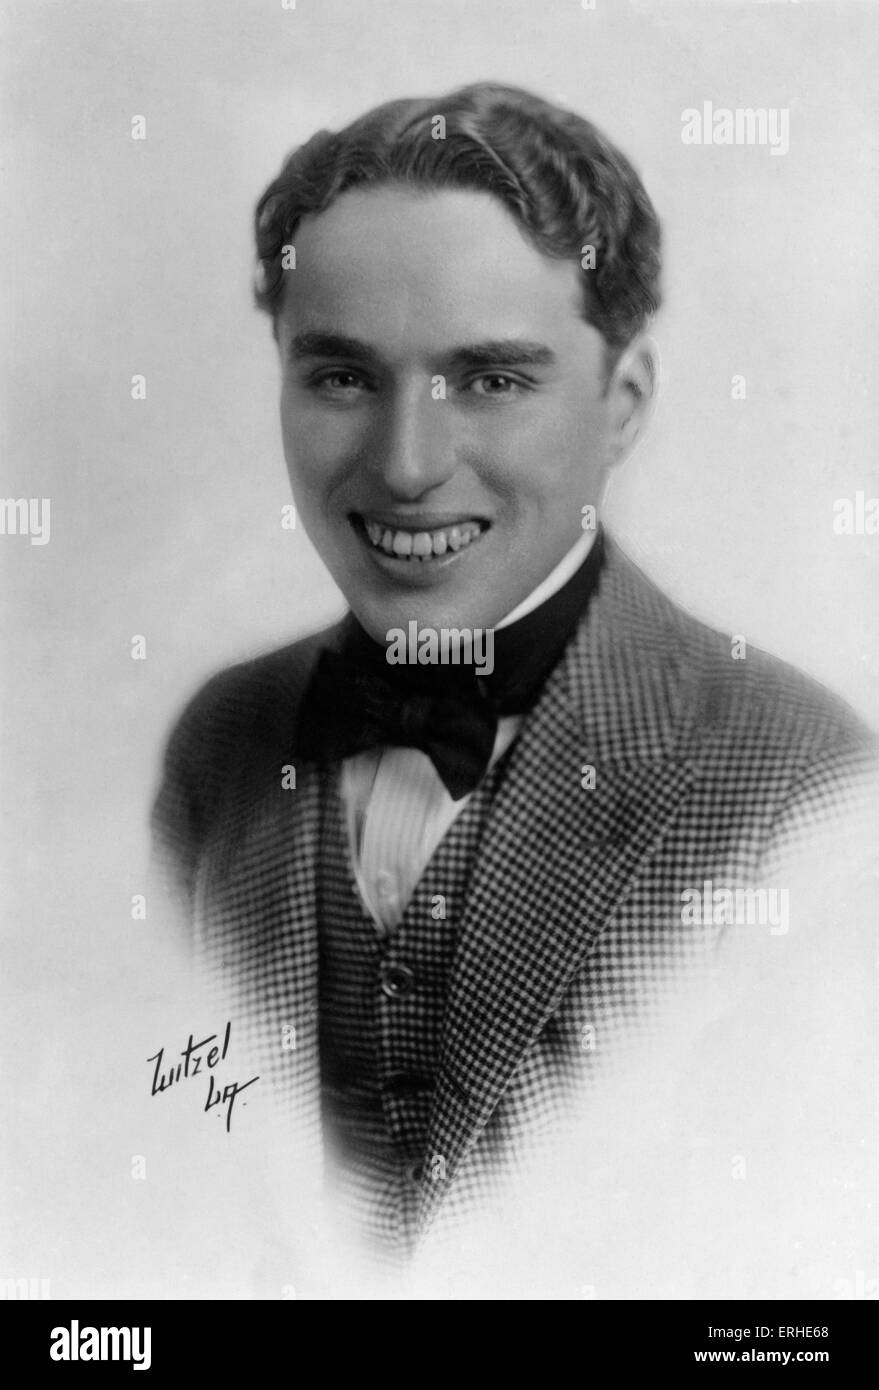 a biography of charlie chaplin an english actor Sir charles spencer charlie chaplin (16 april, 1889 – 25 december, 1977) was a british actor, comedian, movie maker, screenwriter, editor, musician, and author.